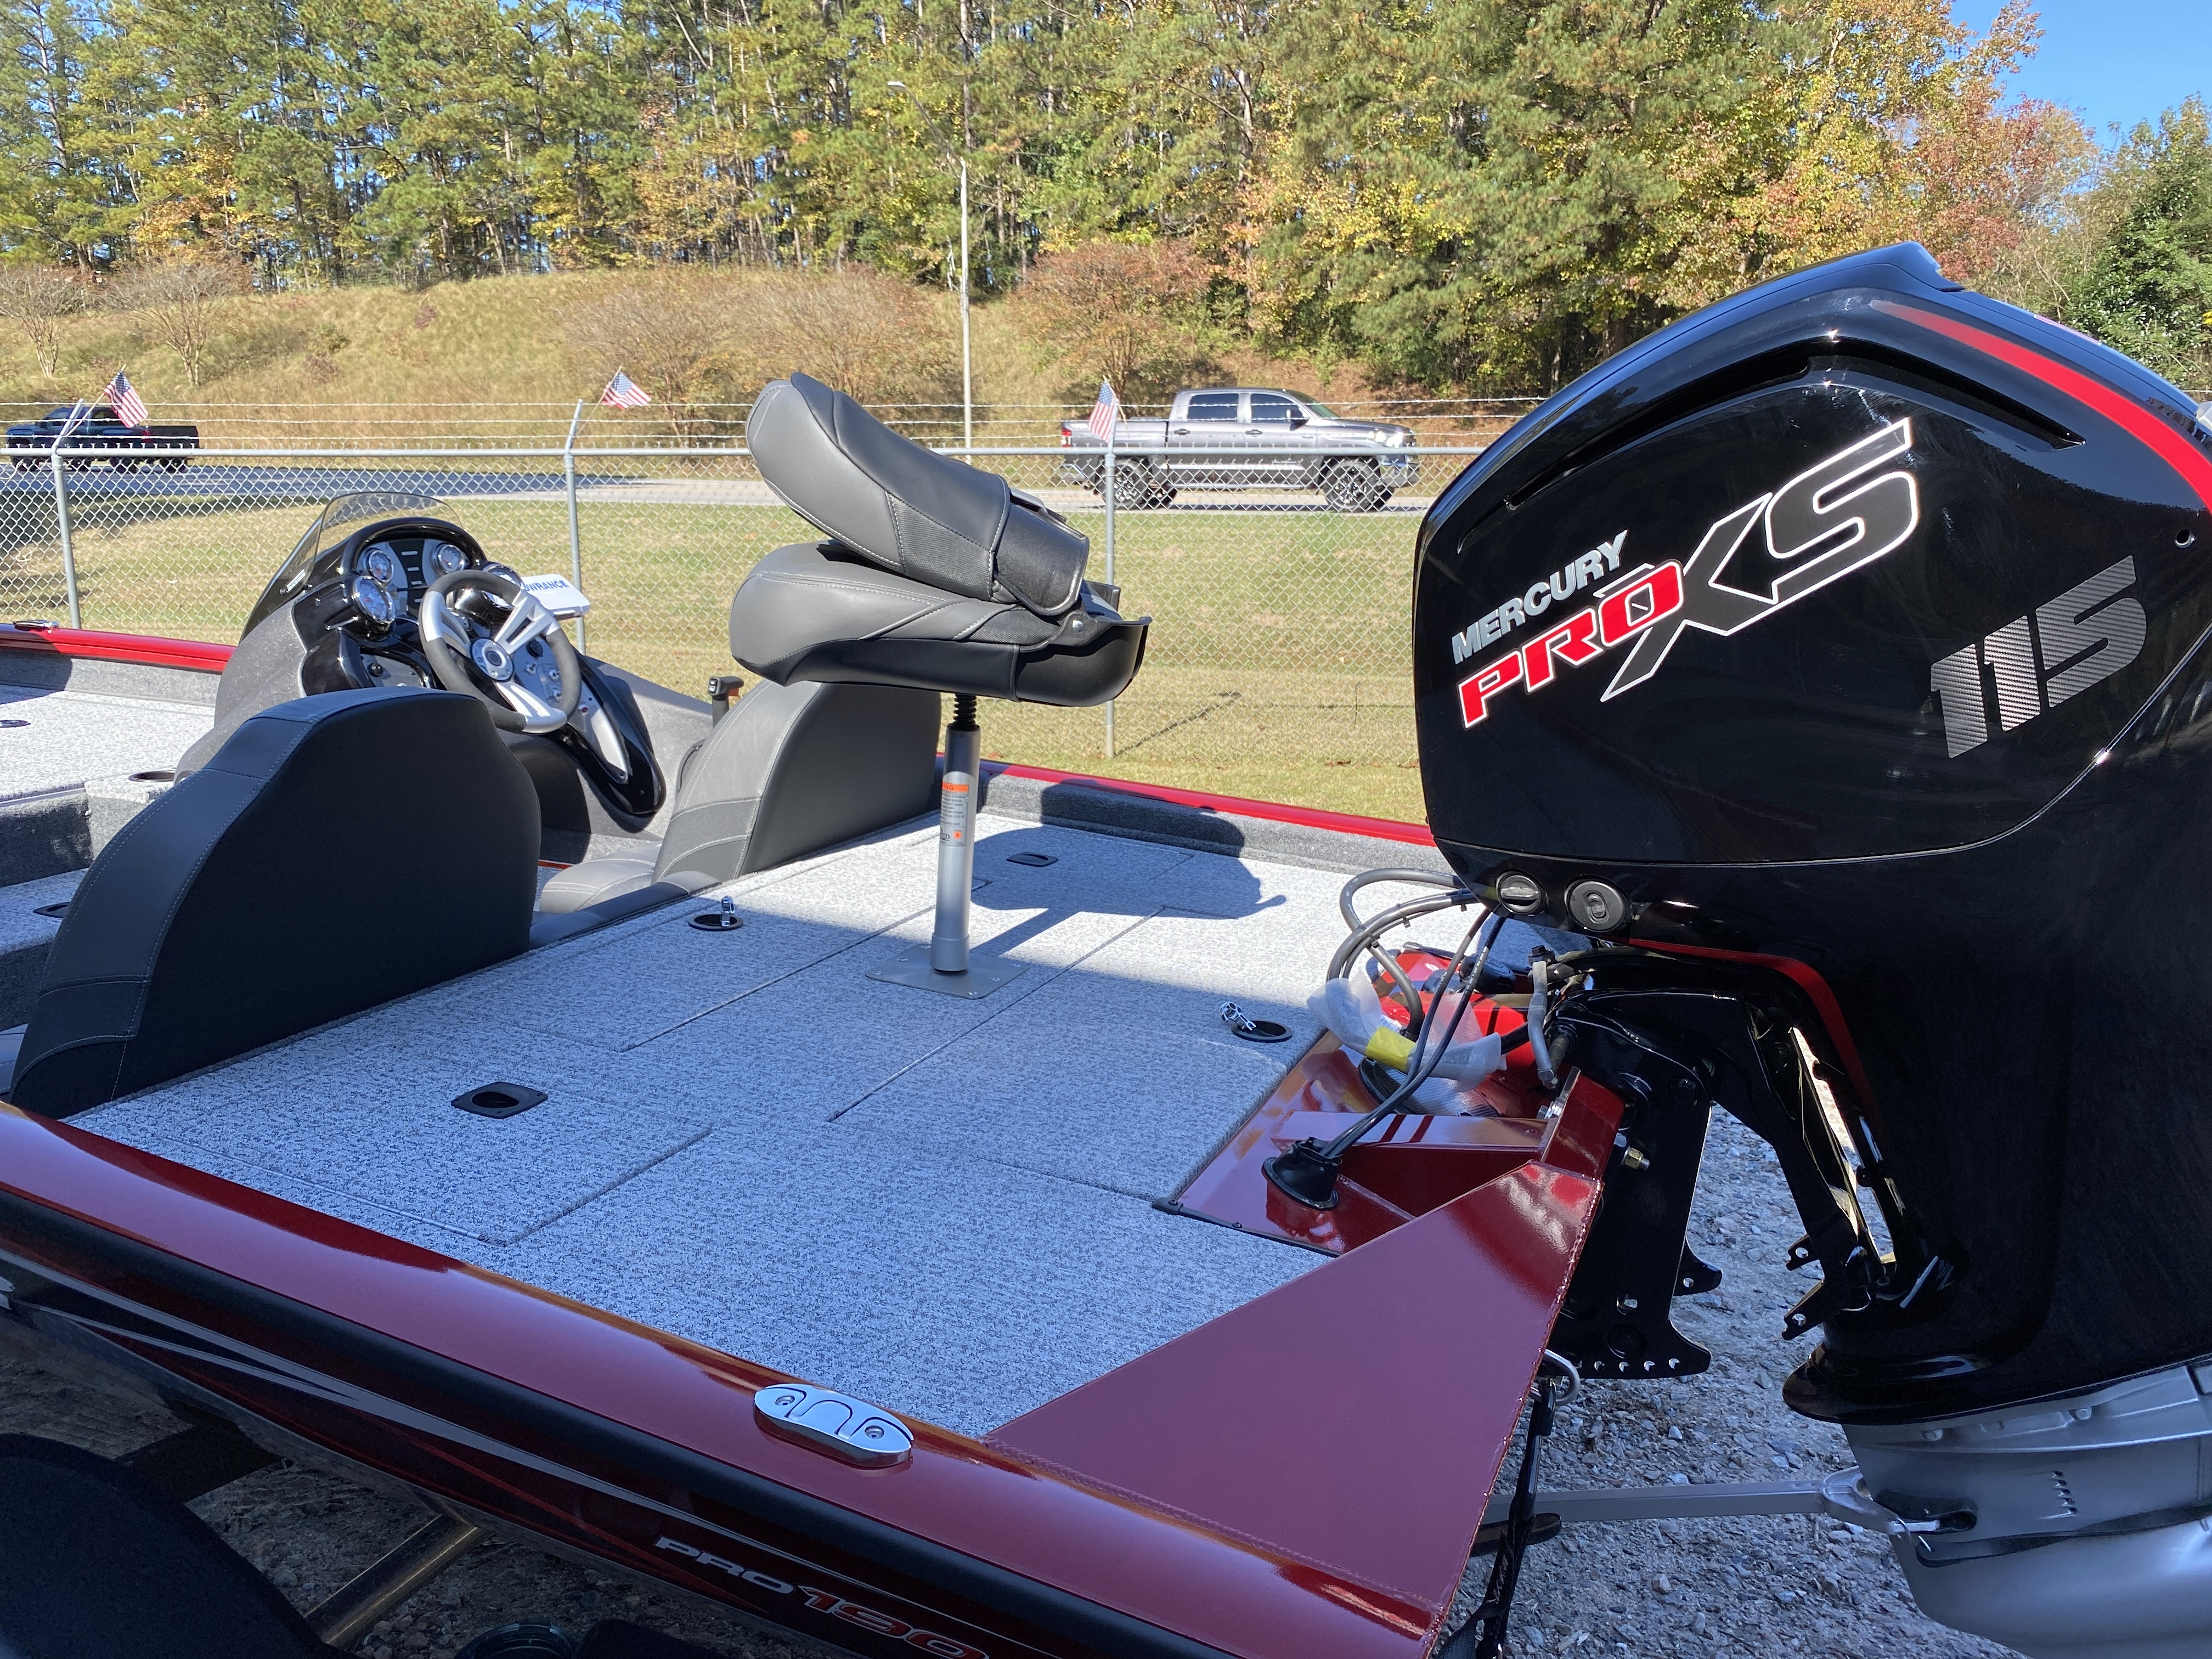 2021 Tracker Boats boat for sale, model of the boat is PT190 TXW Tourn Ed & Image # 13 of 50